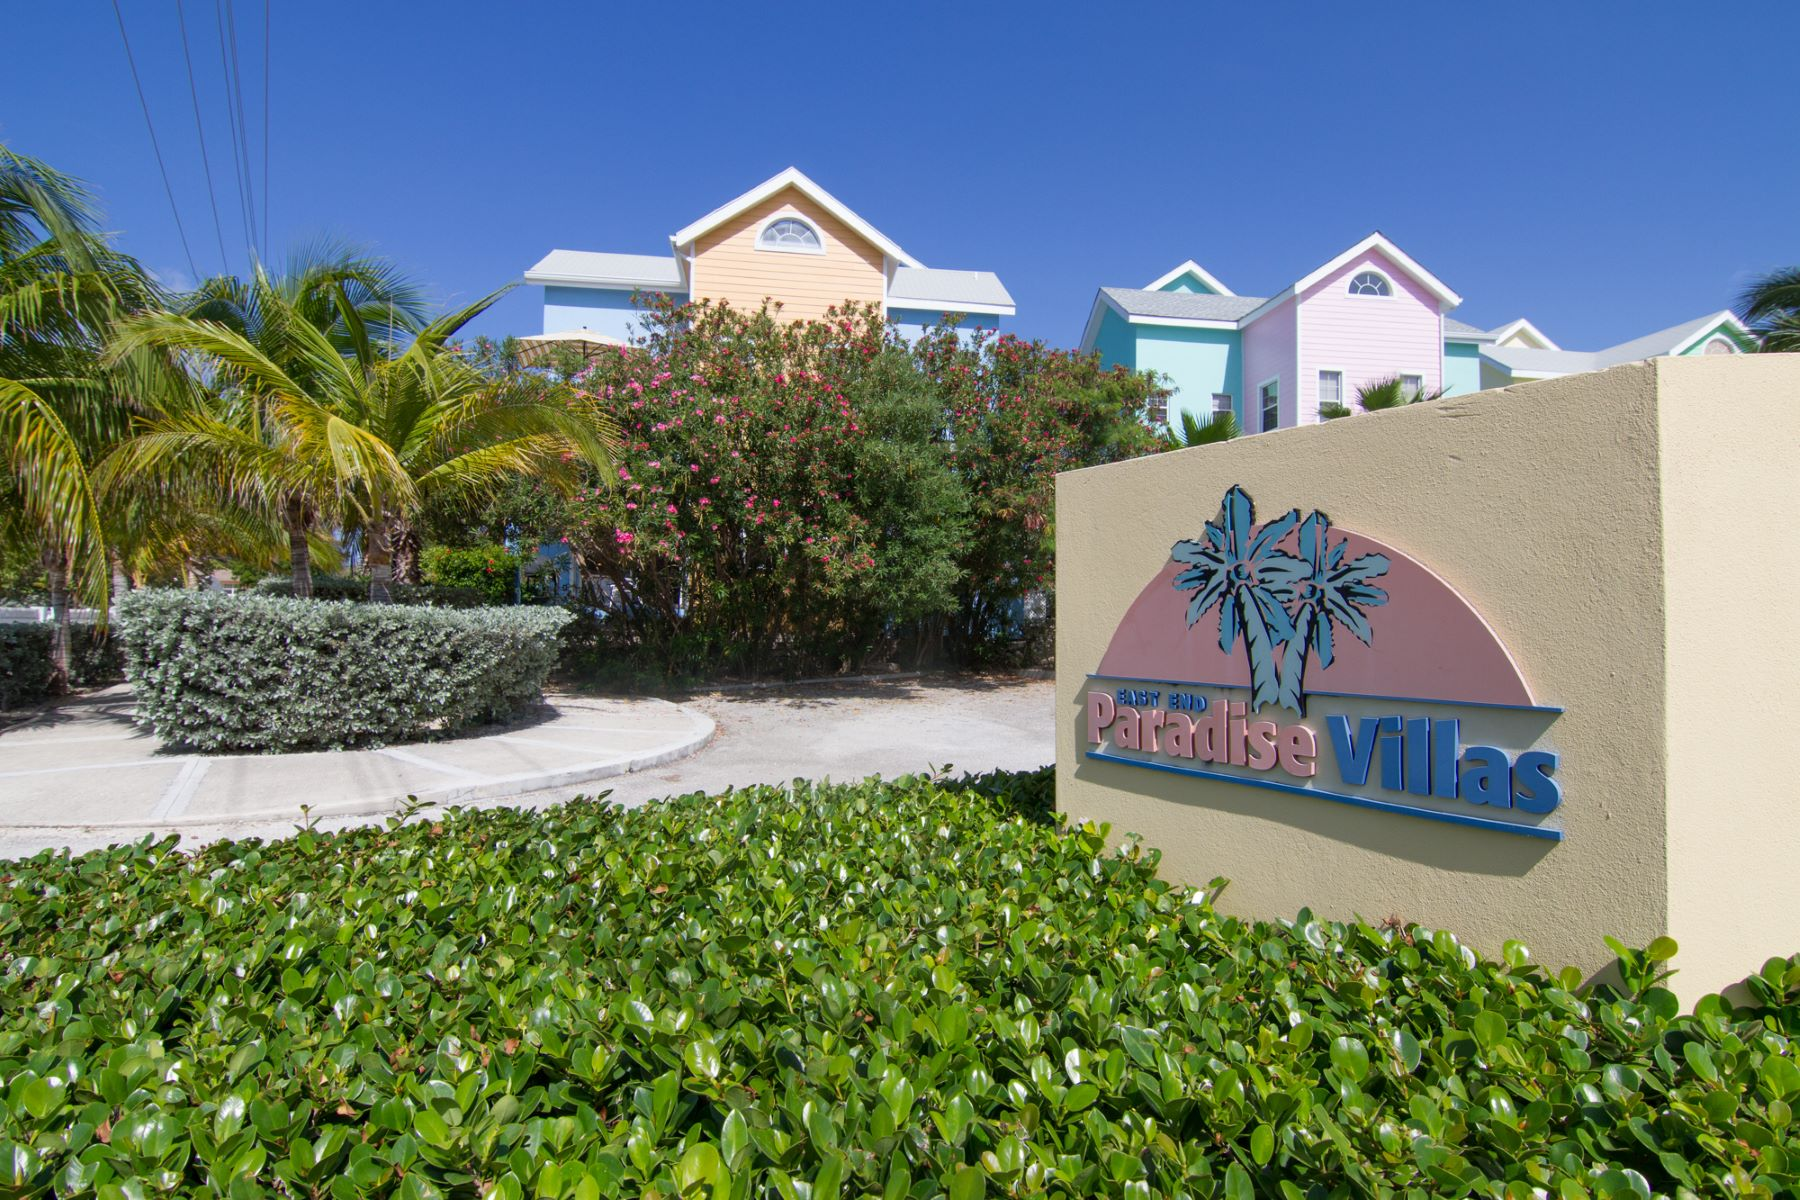 Additional photo for property listing at Tequila Sunrise at Paradise Villas Vacation Rental 东区, 大开曼岛 开曼群岛